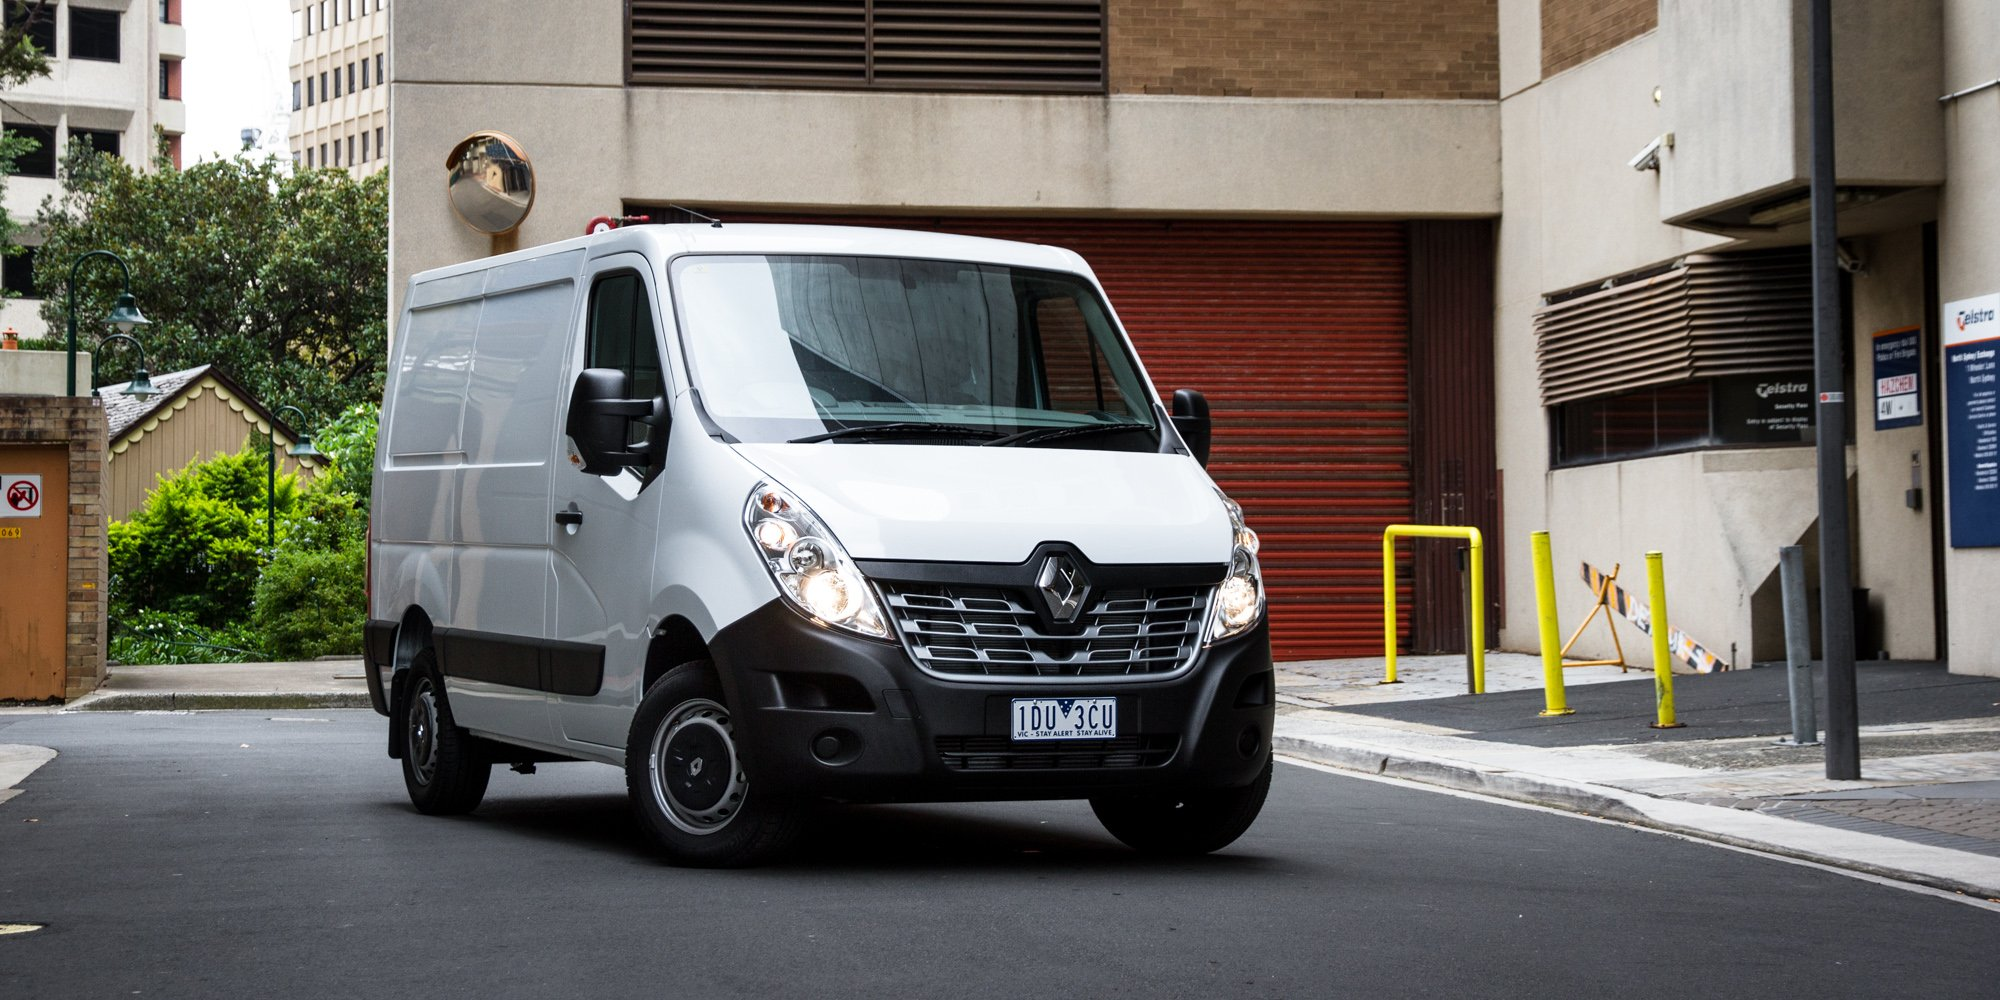 2015 Renault Master L1H1 Review | CarAdvice